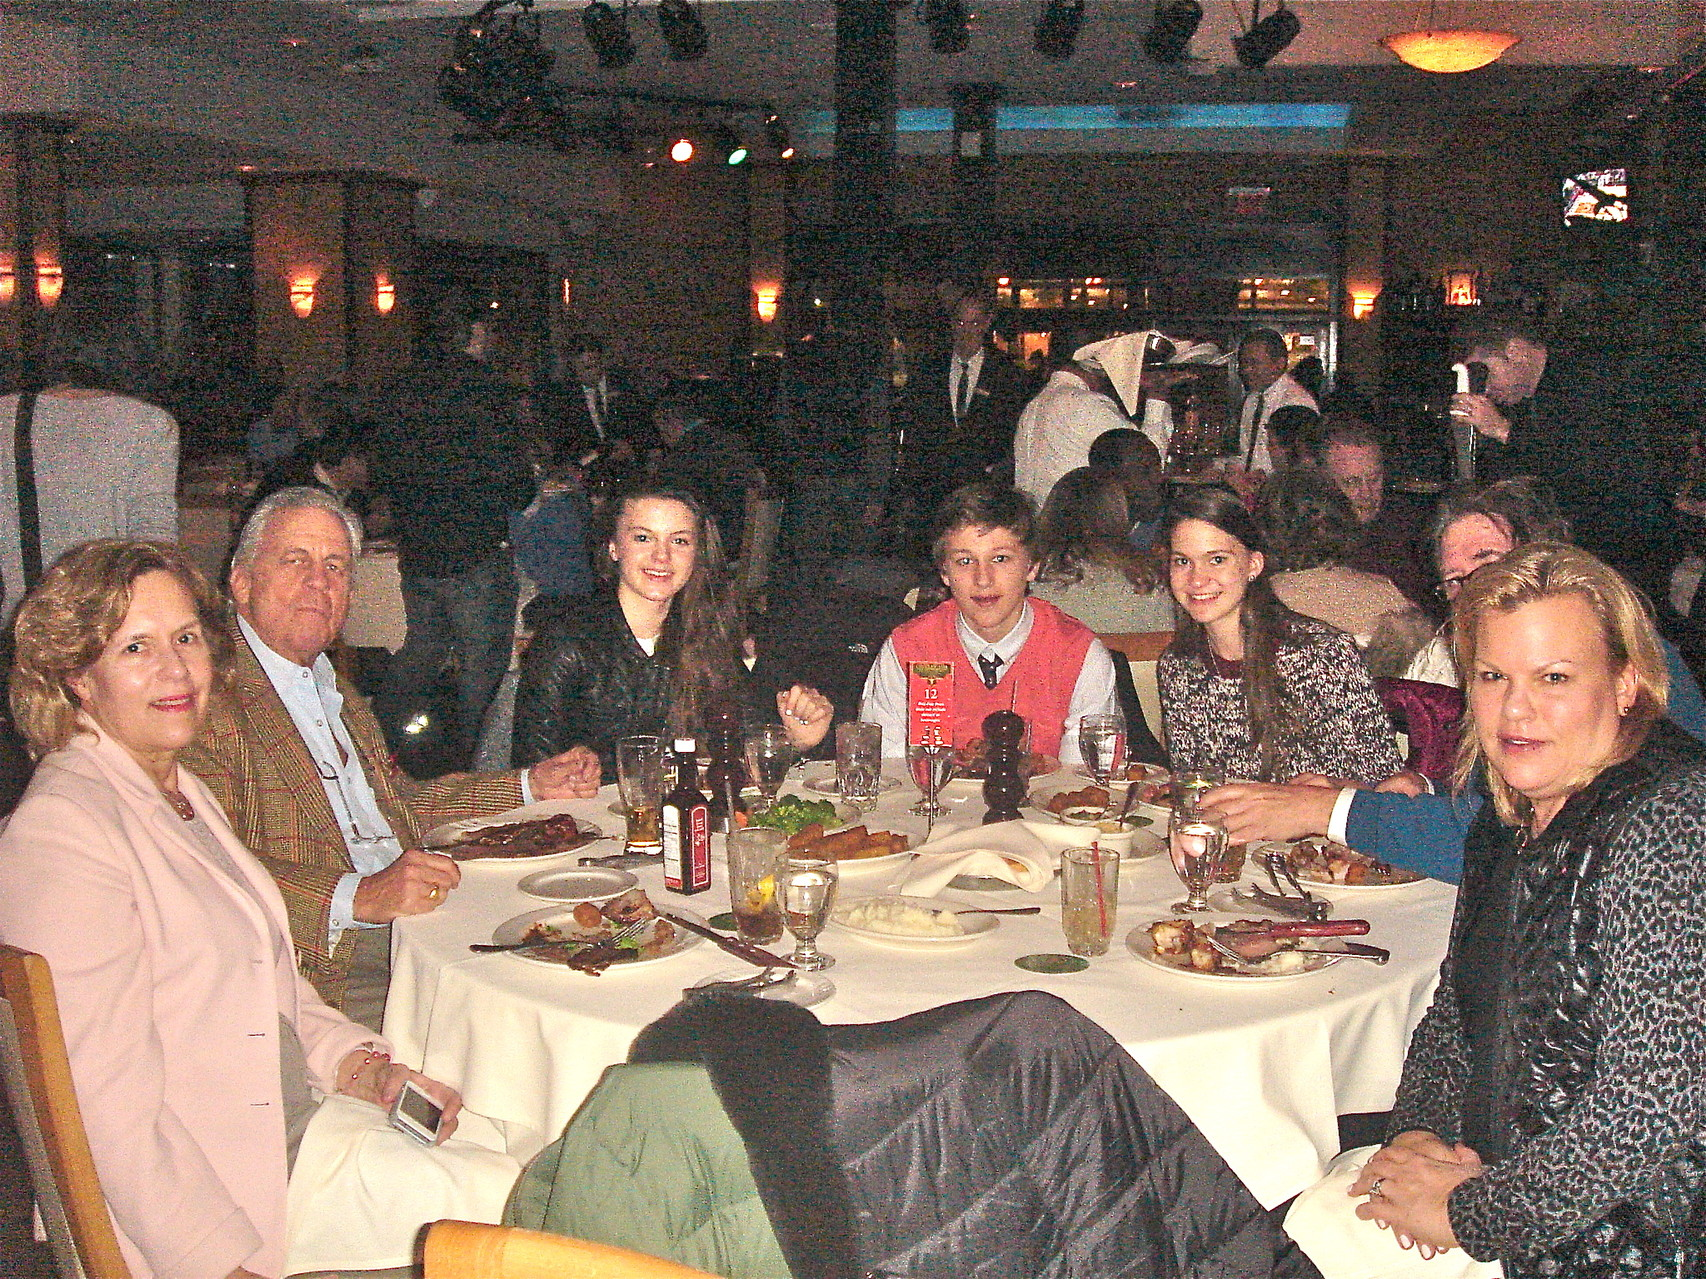 Lorraine, Stuart, Kate, Jack, Ellie, John (hidden) & Celeste at Churrascaria Plataforma